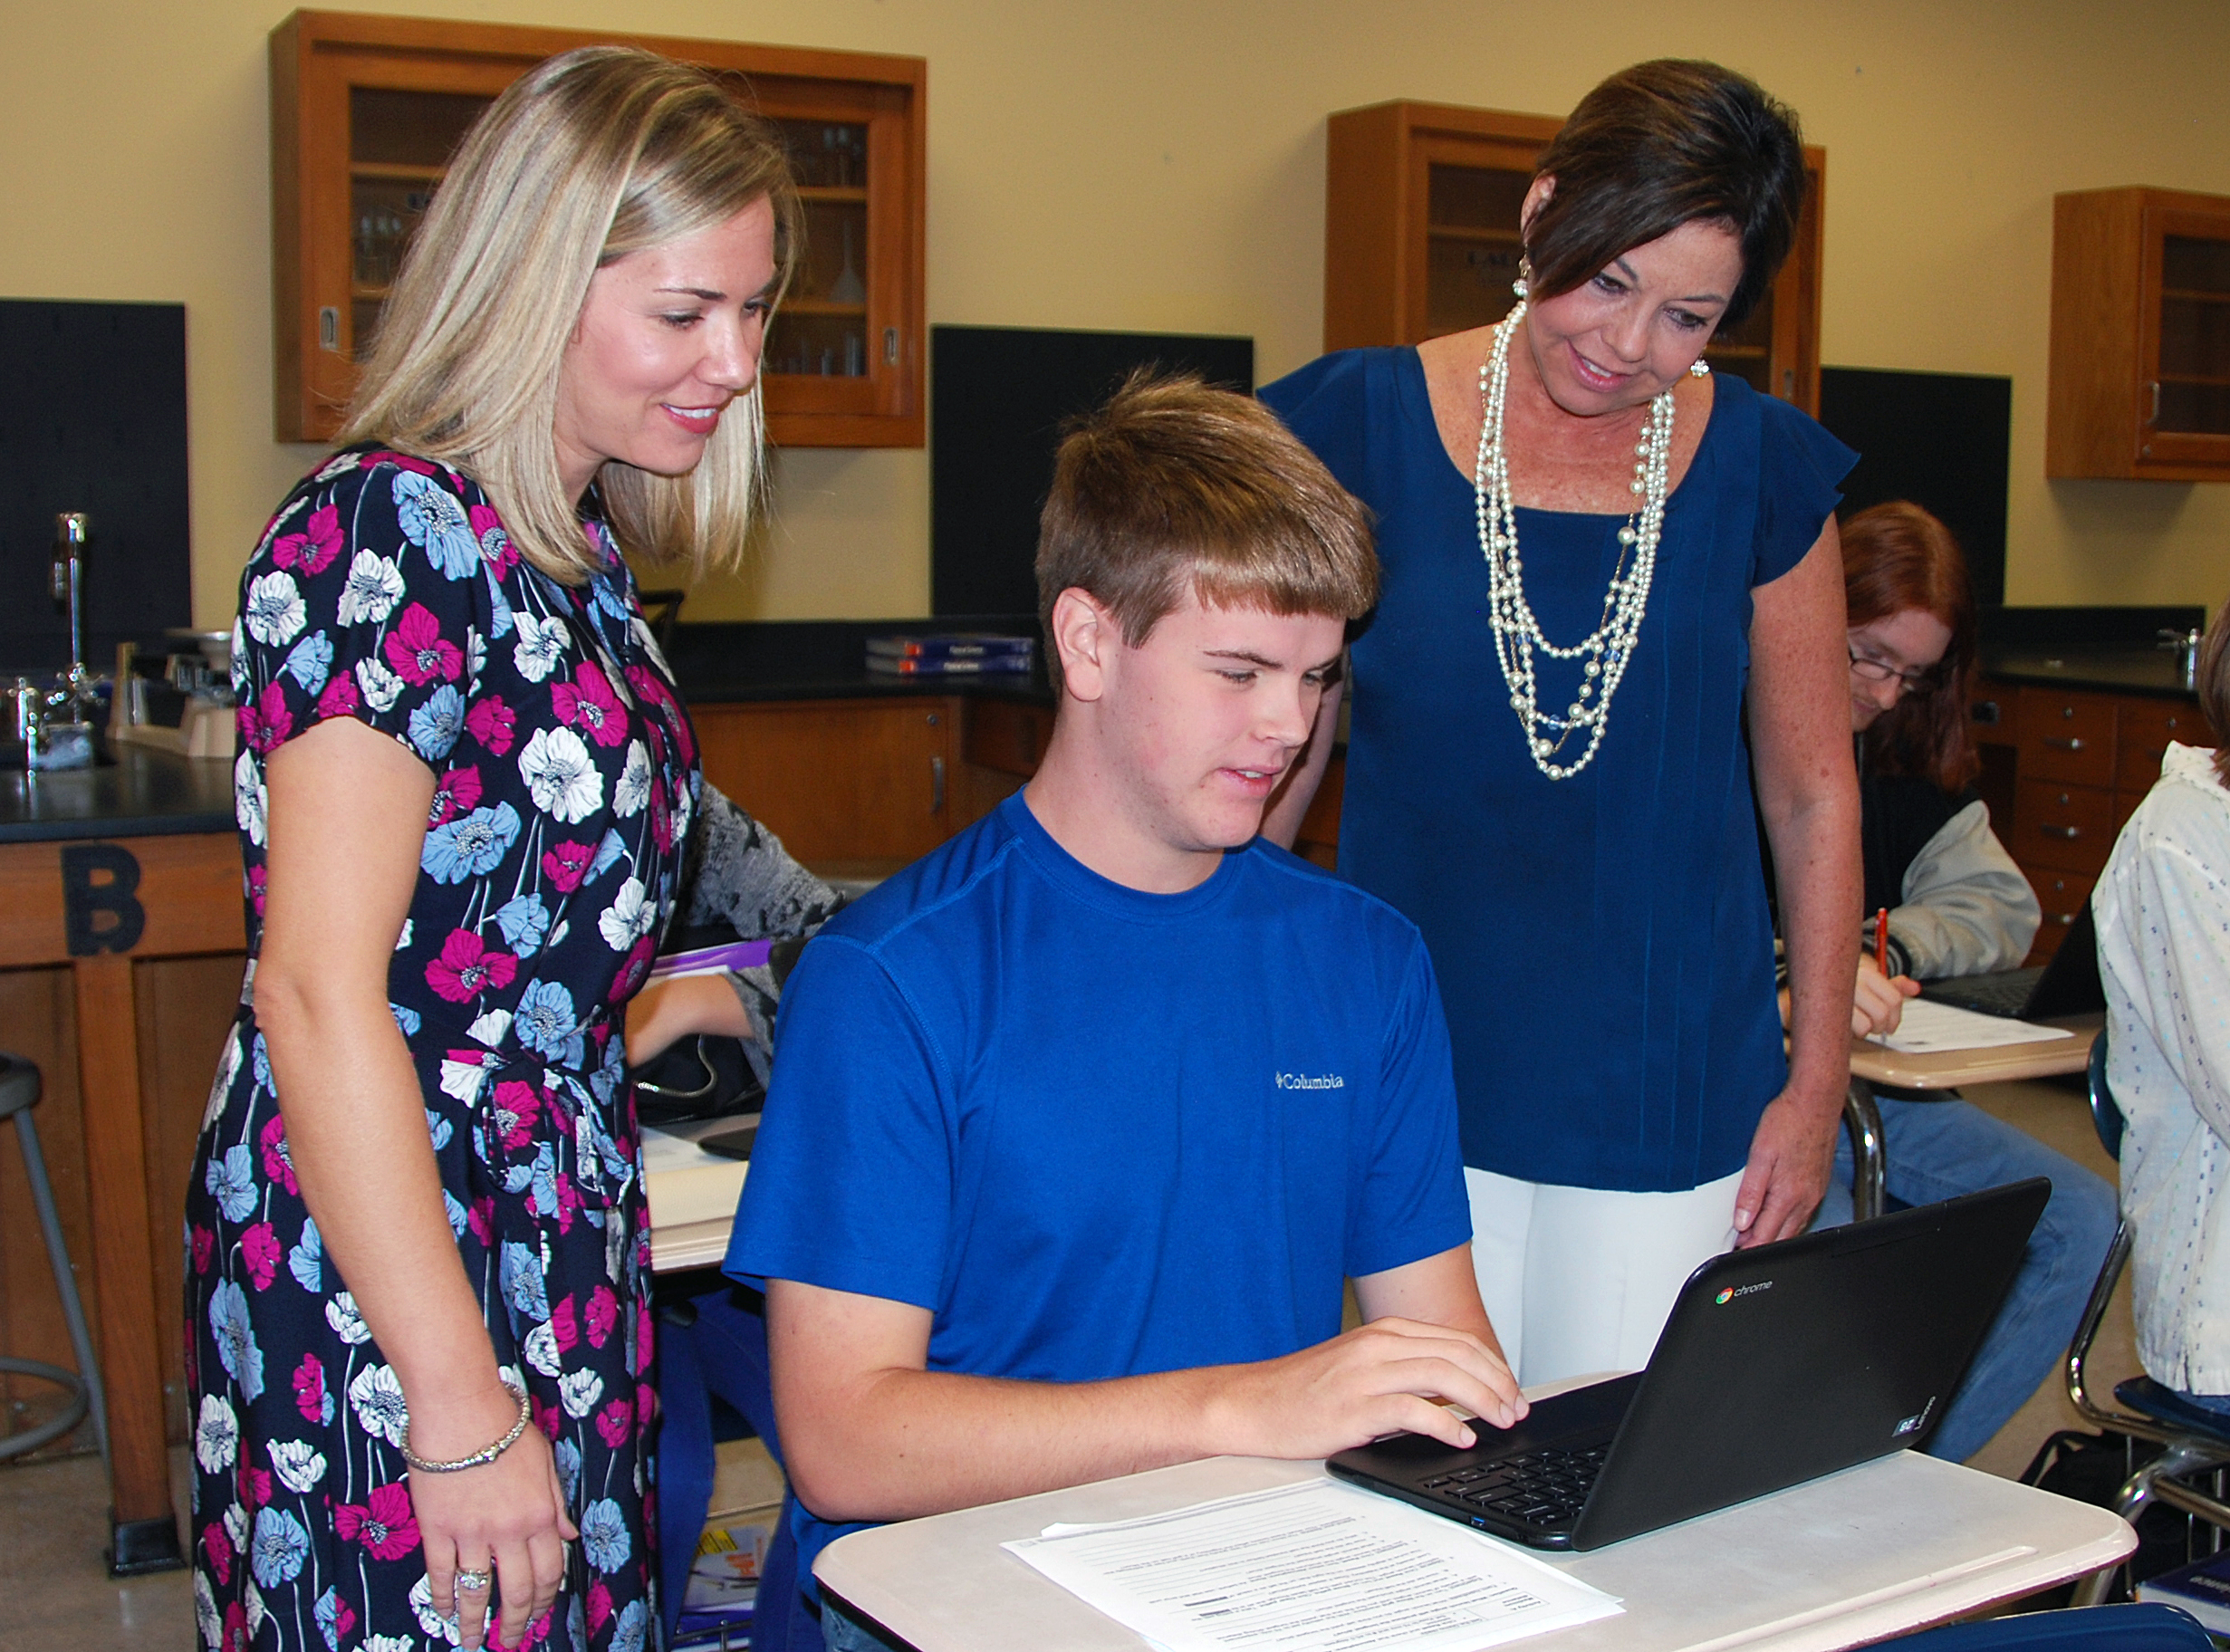 Instructional Technology Specialist Lindsay Thompson and TCCHS Principal Trista Jones observe Jackson Groom working on a Chromebook in Ryan Strickland's Physics classroom.